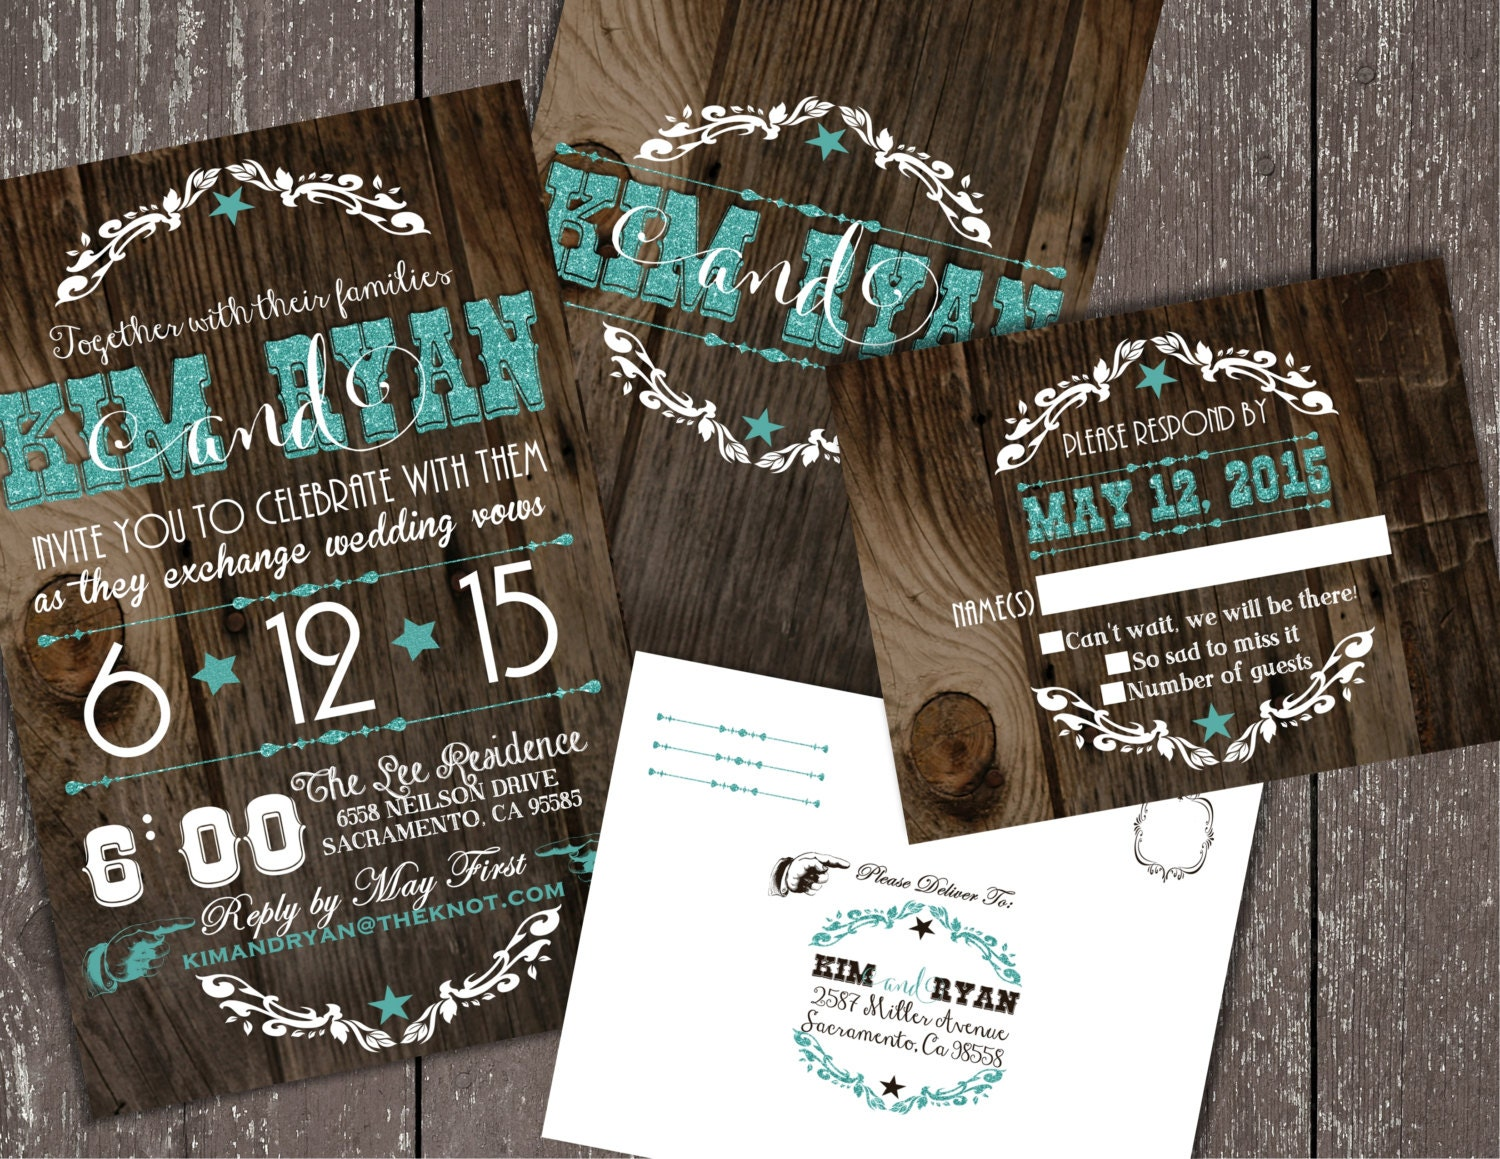 Western Wedding Invitation Wording: Wedding Invitations Western Wedding Invitations Cowboy